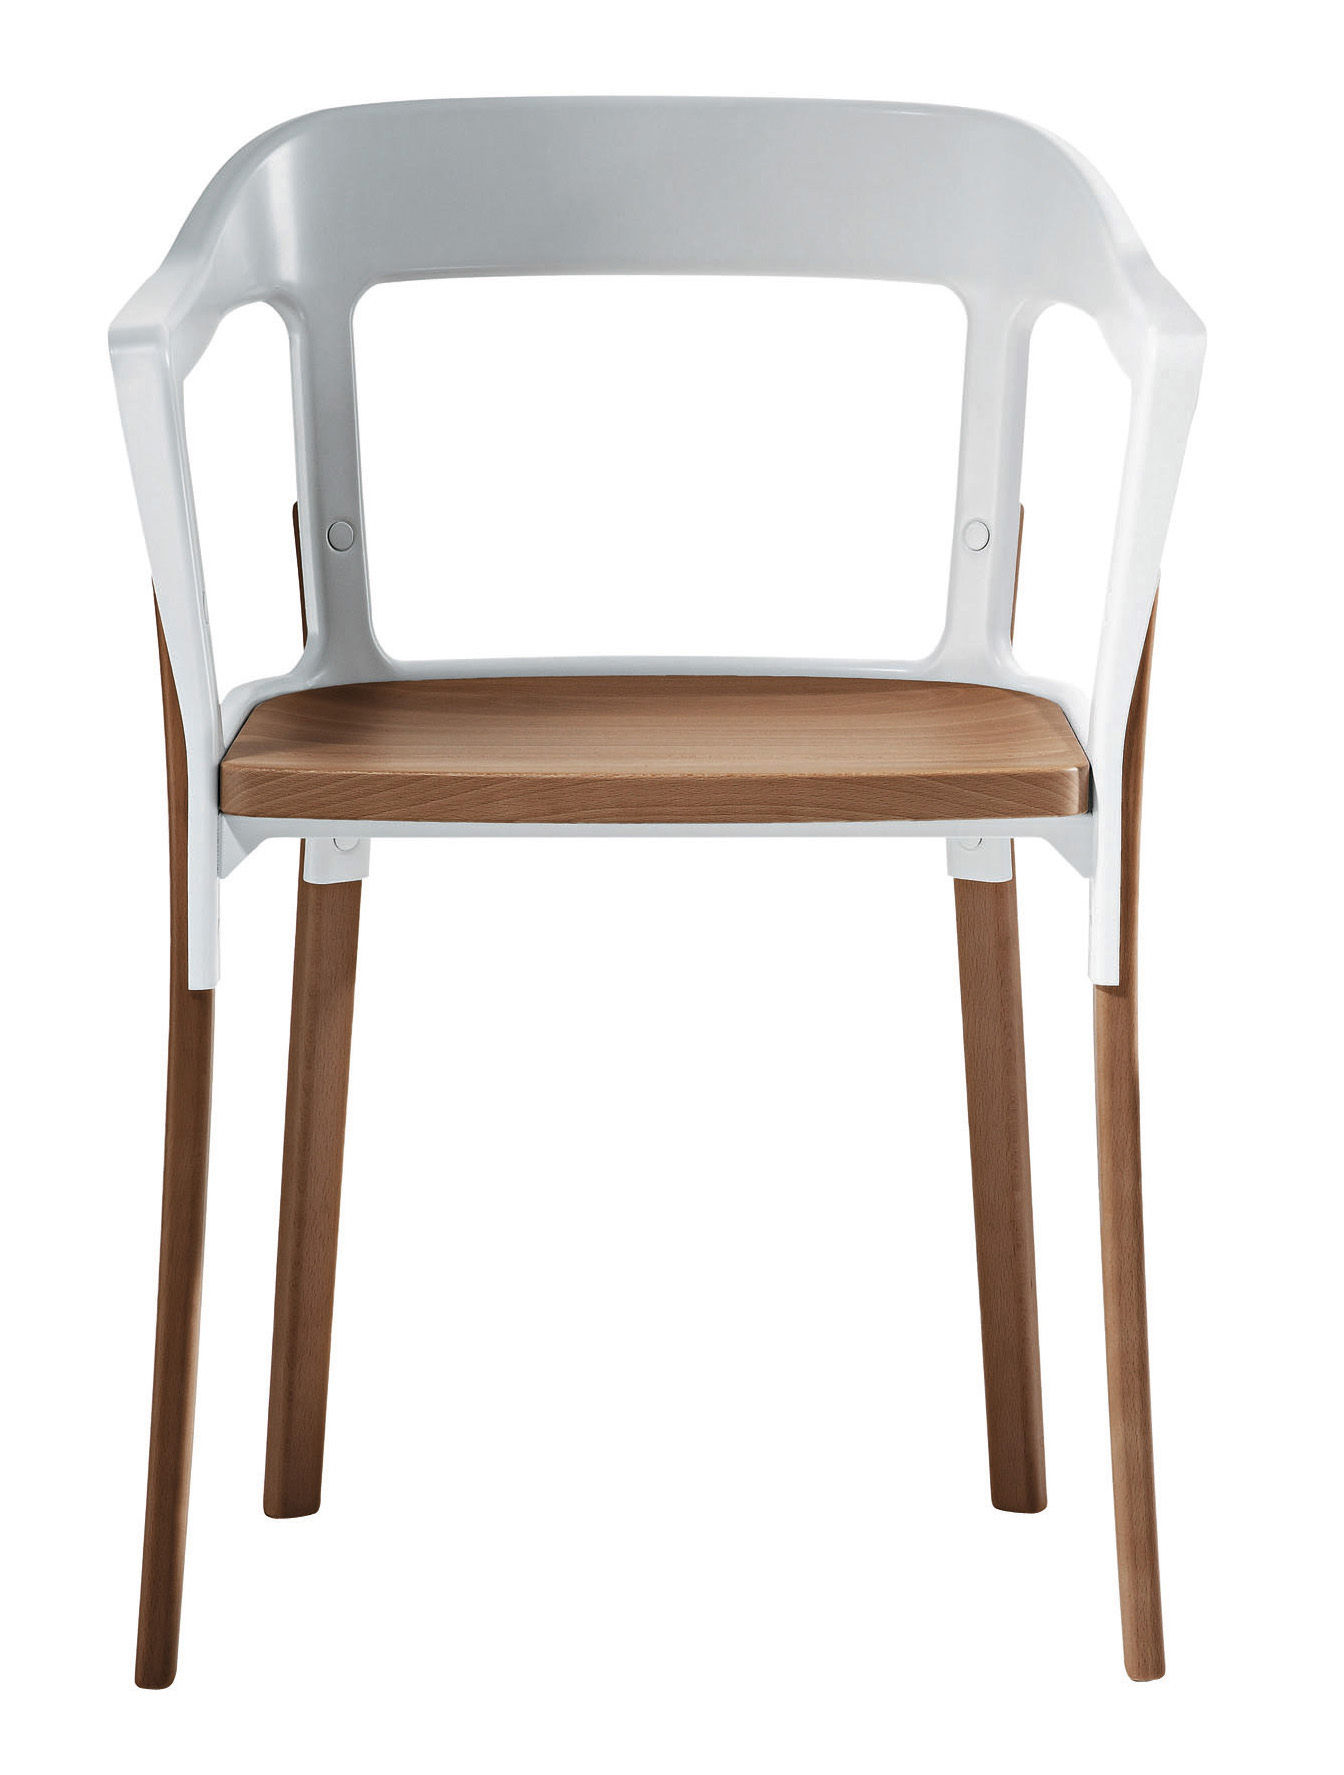 Steelwood armchair wood metal white beech by magis for Magis steelwood